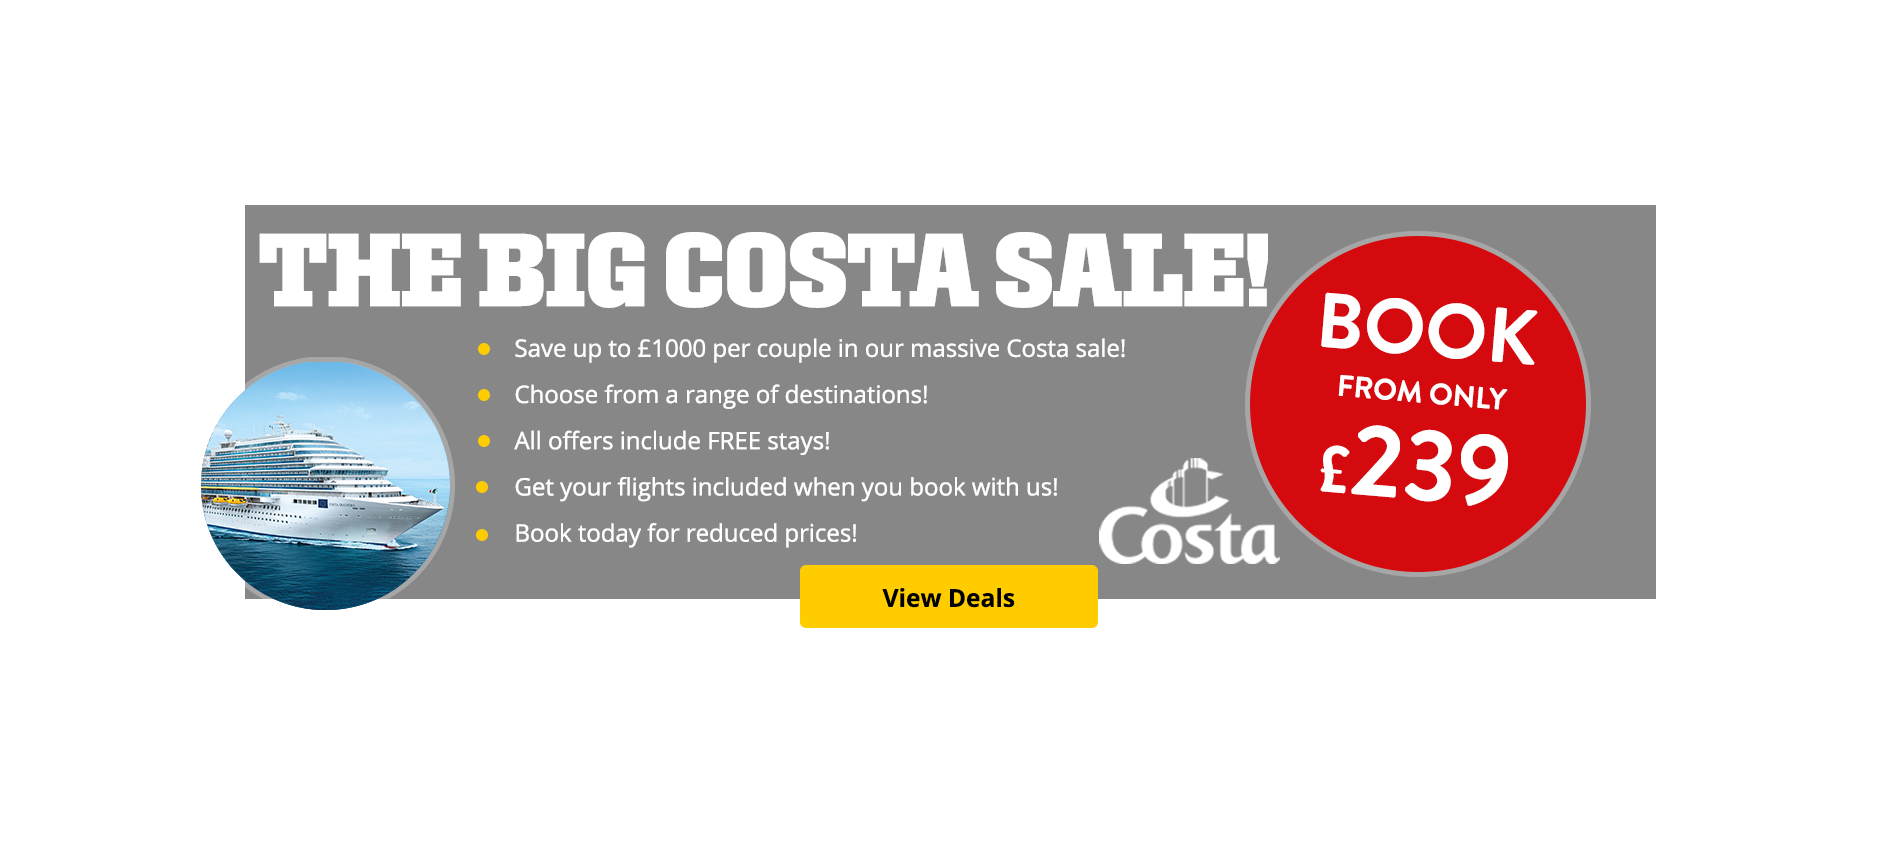 Save up to £1000 per couple in our massive Costa sale! Book today for reduced prices!